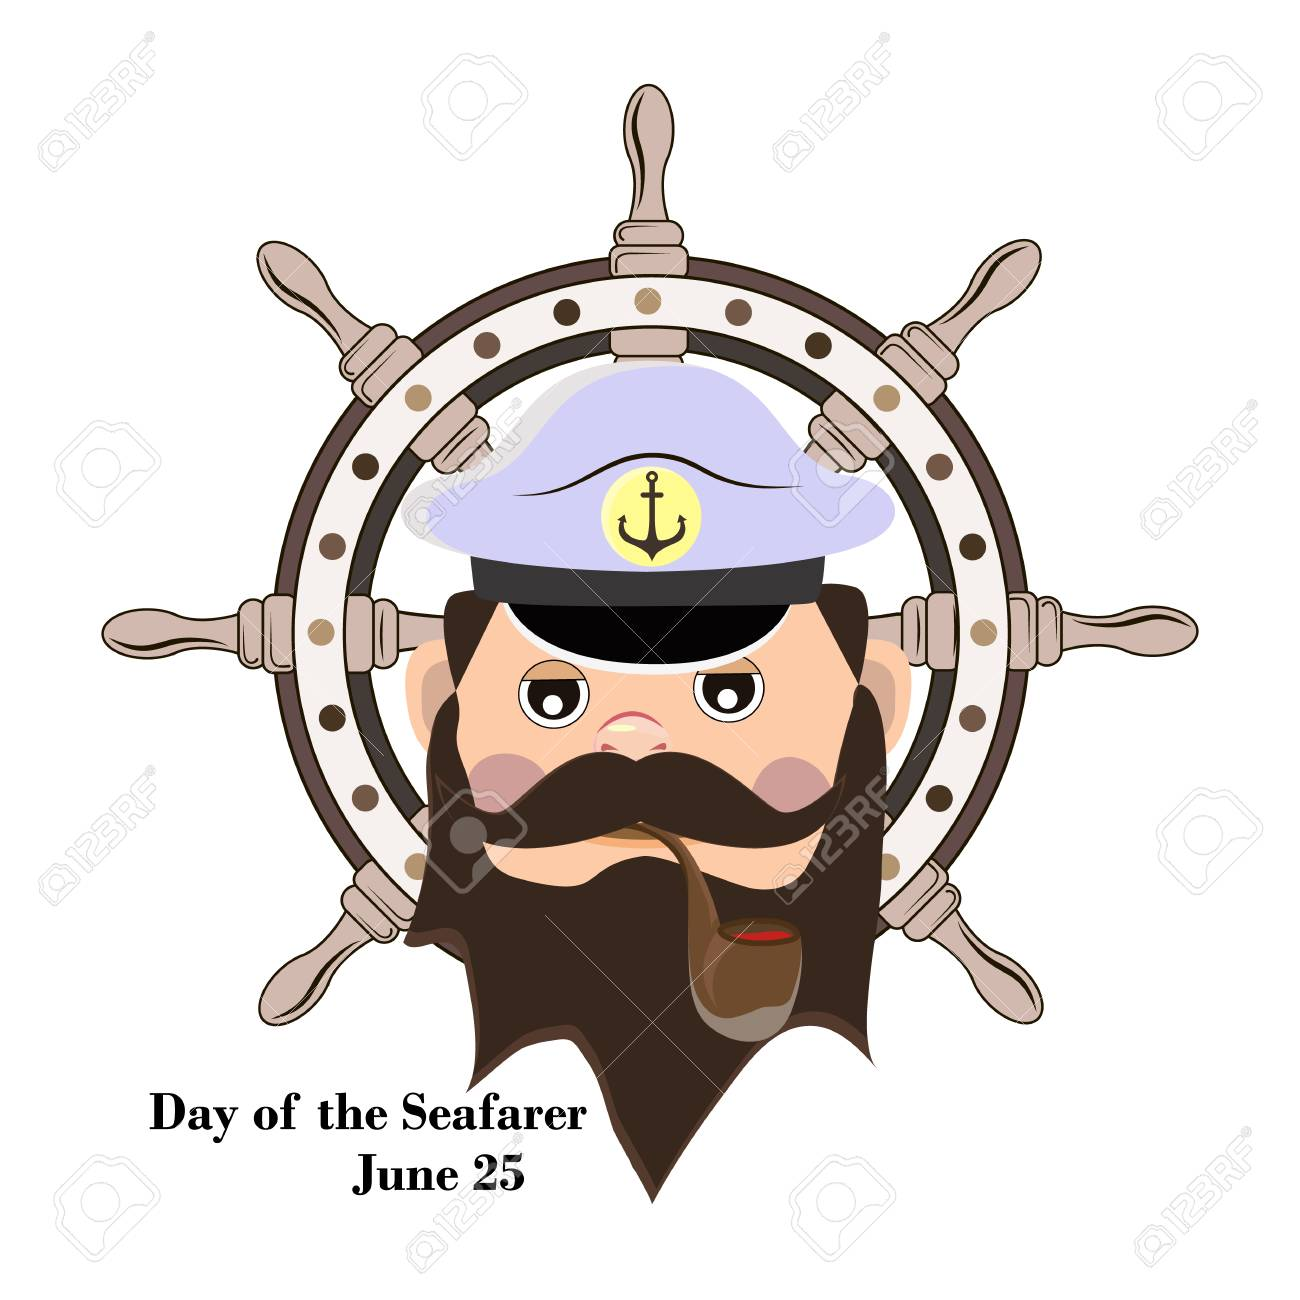 Element of design for the Day of the seafarer, the captain of the ship smokes a pipe. Vector illustration. - 102394921